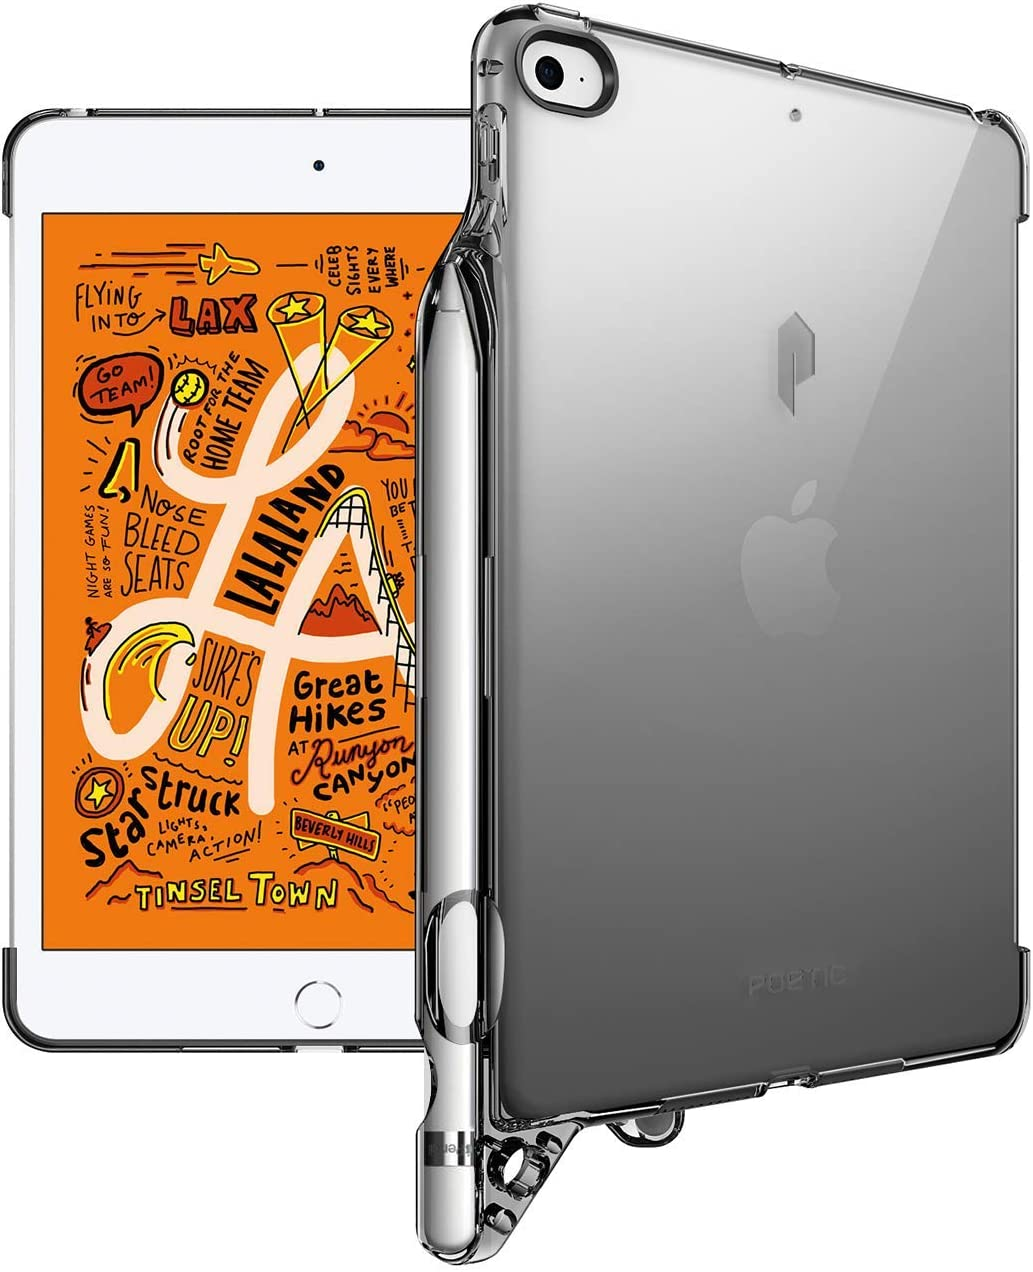 iPad Mini 5 Clear Case, Poetic Flexible Soft Transparent TPU Clear Back Cover with Pencil Holder, Compatible with Apple Smart Cover, Lumos, for Apple iPad Mini 5, Transparent Gray